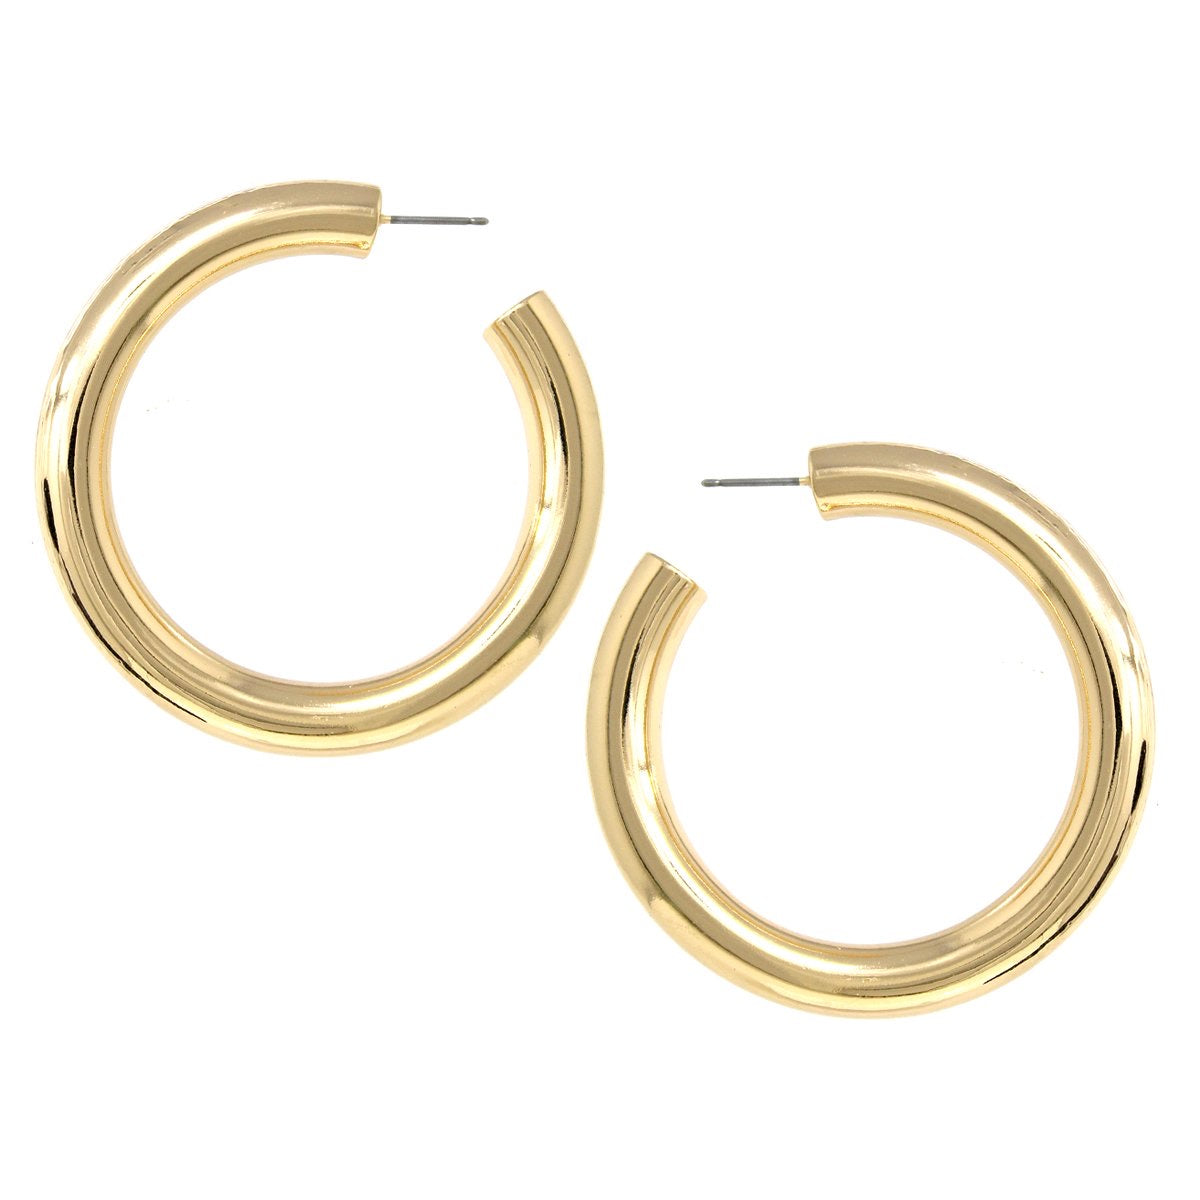 BITZ LARGE GOLD METAL COATED HOOP EARRINGS - SHINY GOLD HOOPS